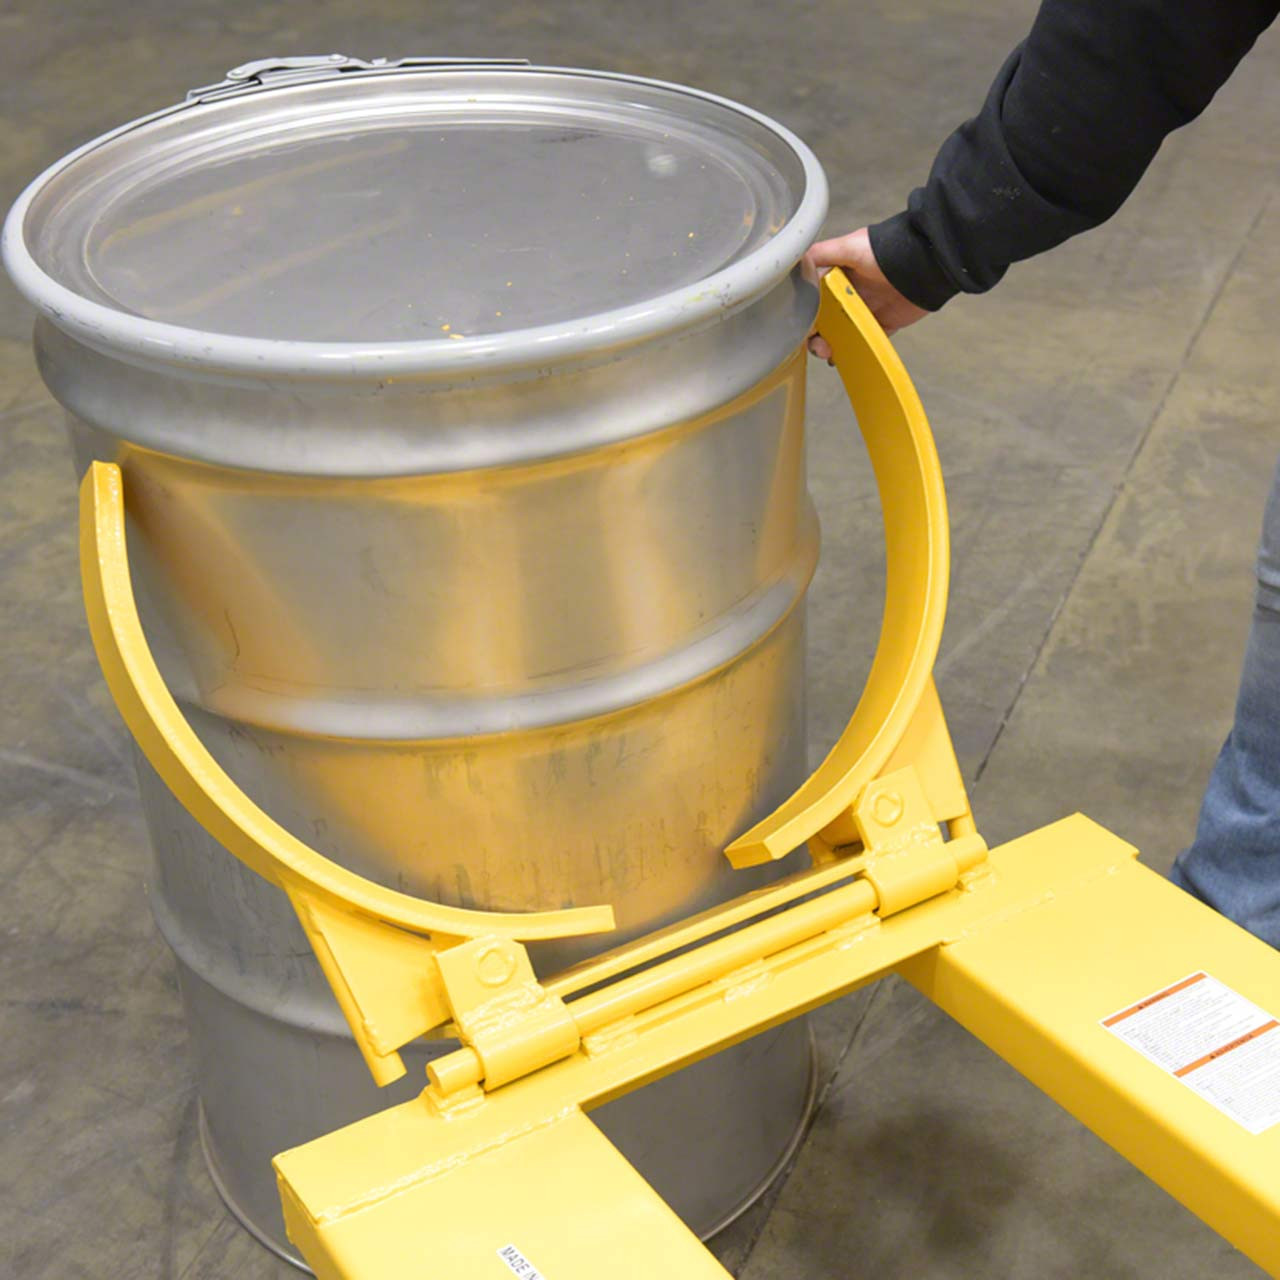 This drum lifter is suitable for 55 gallon drums